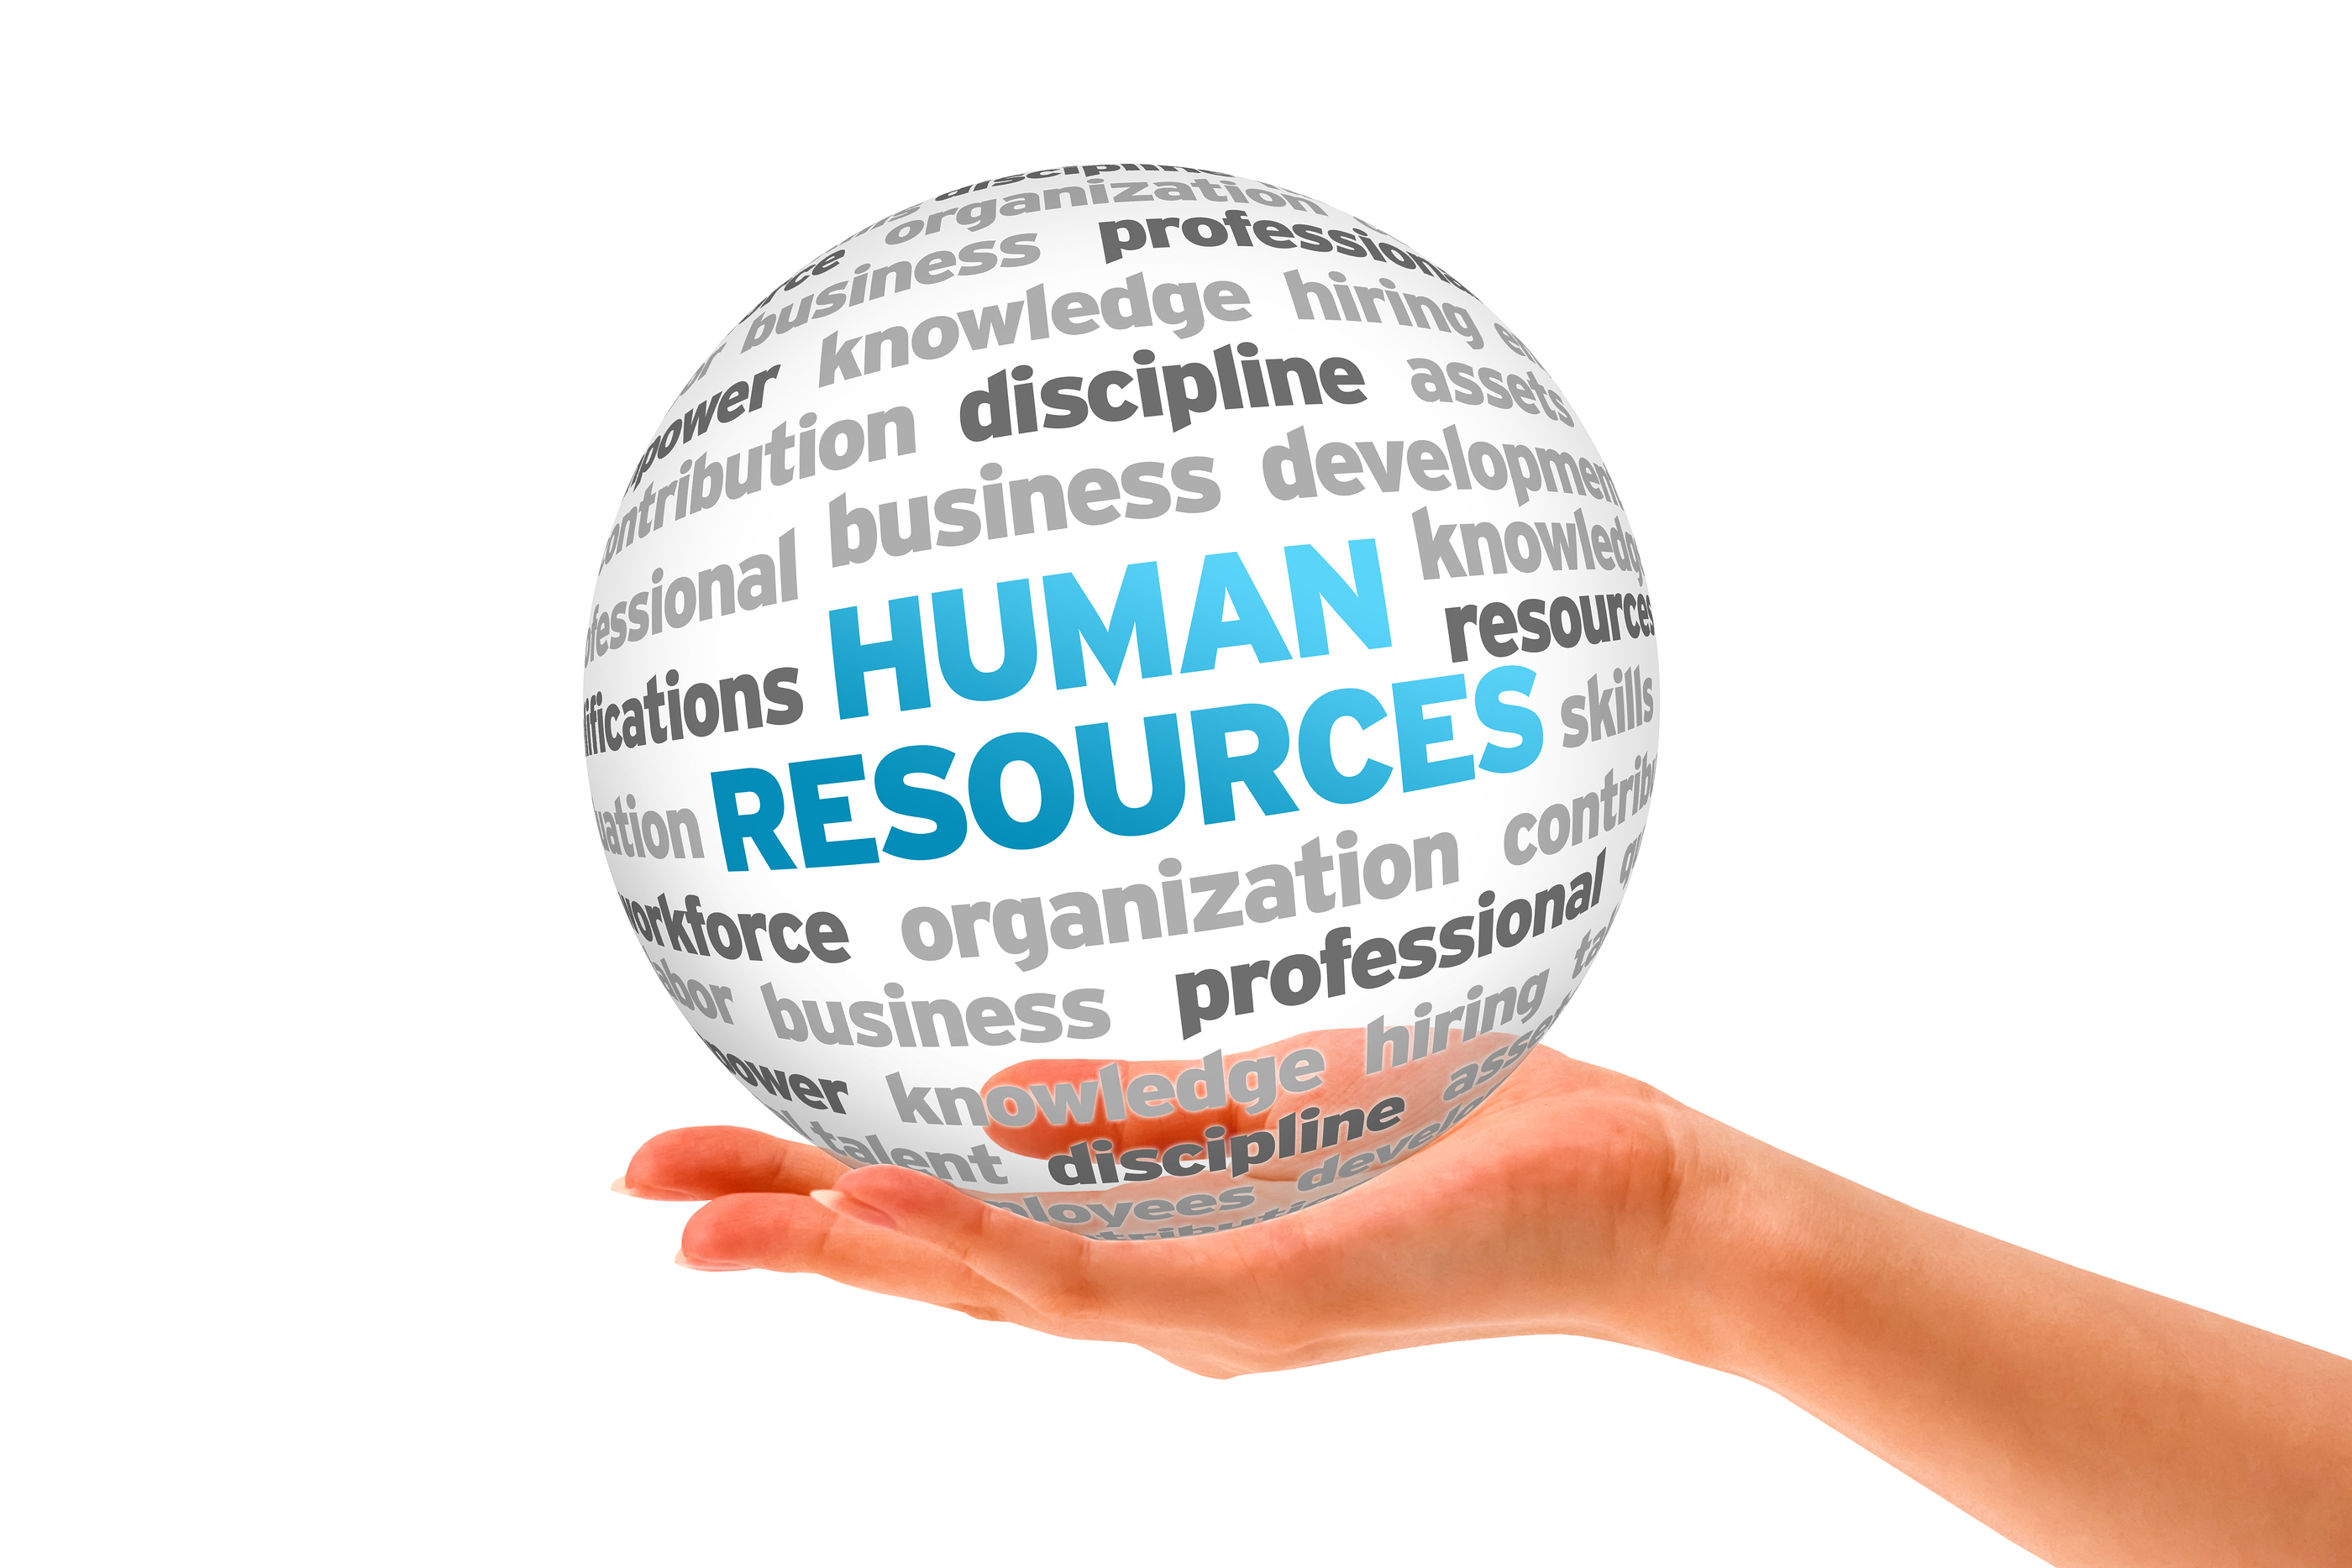 Human Resources list of general subjects in college